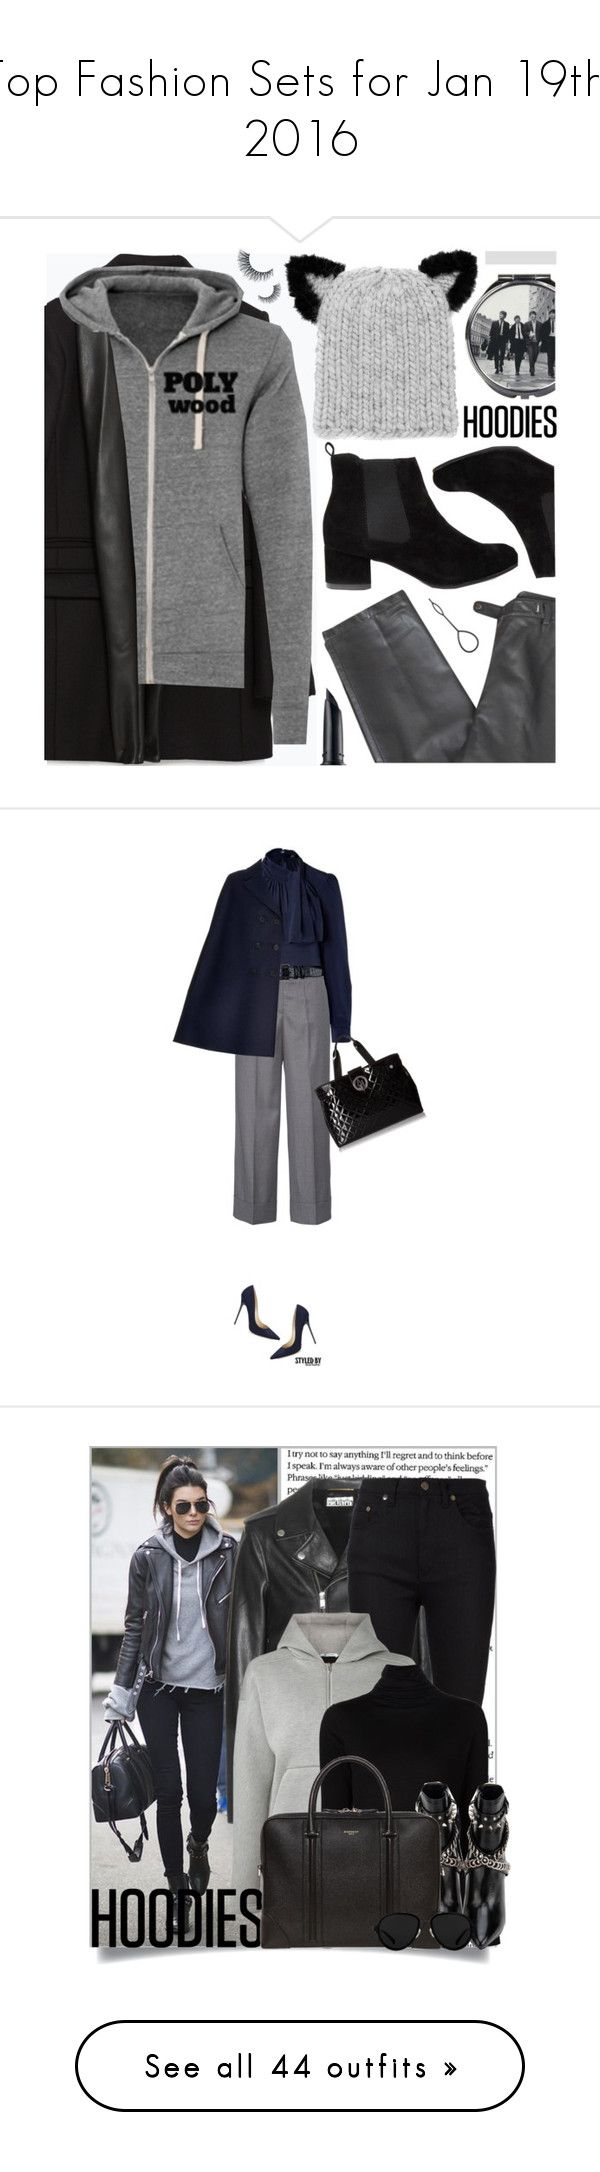 """Top Fashion Sets for Jan 19th, 2016"" by polyvore ❤ liked on Polyvore featuring Zara, Polywood, Lafayette 148 New York, Disaster Designs, Eugenia Kim, Benefit, grey, Trendy, hoodie and Dorothy Perkins"